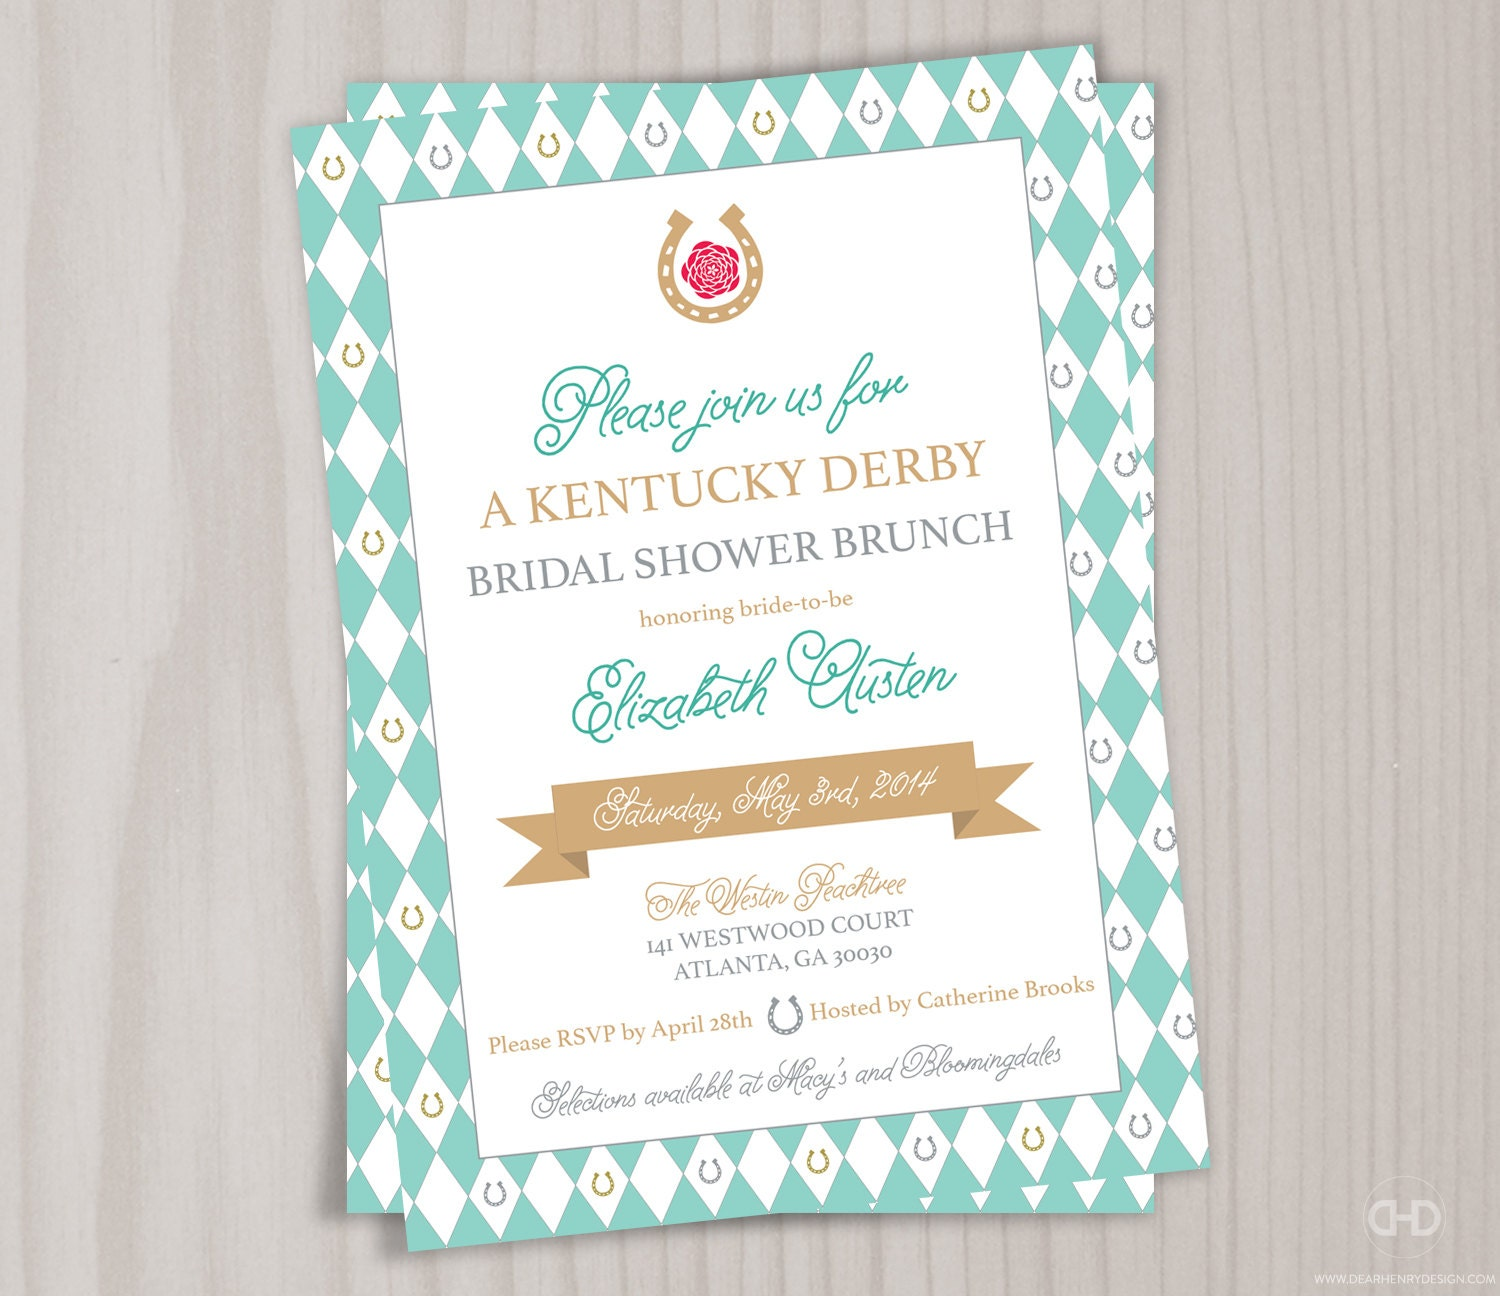 Kentucky Derby Bridal Shower Invitations absolutely amazing ideas for your invitation example